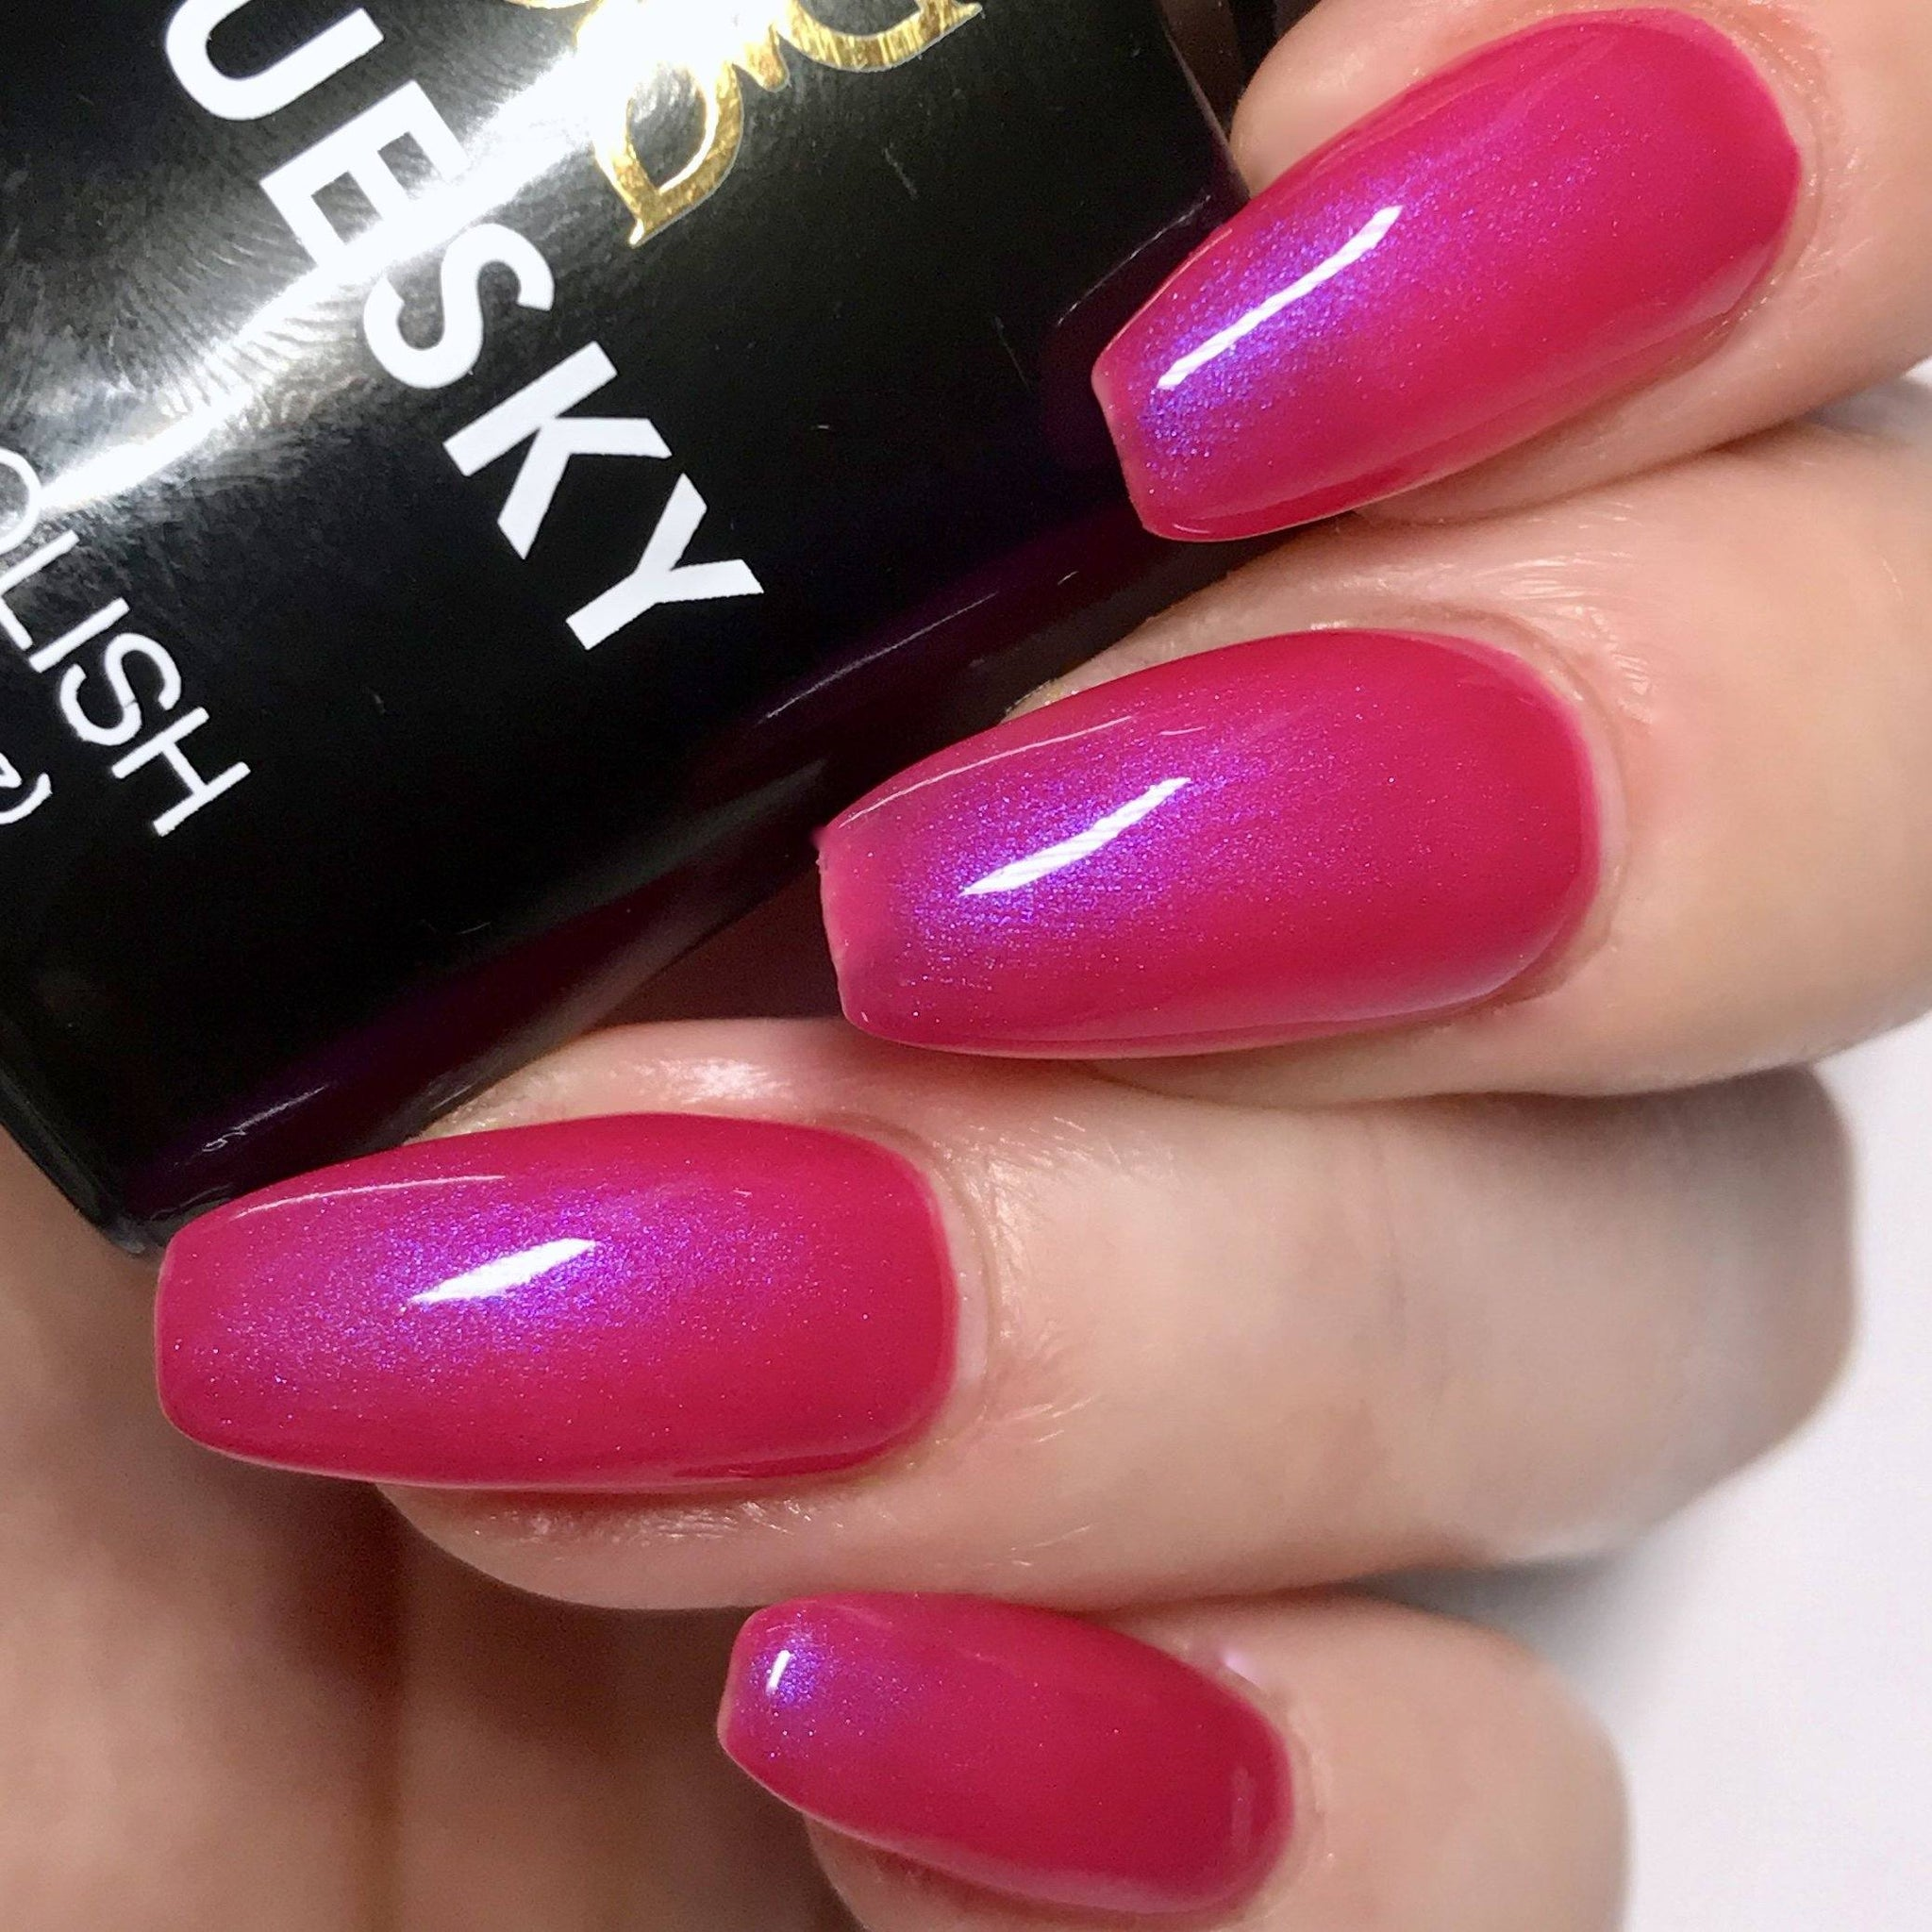 Bluesky 80506 TUTTI FRUTTI UV/LED Soak Off Gel Nail Polish 10ml Free P&P! - Bluesky Nail Gel Polish